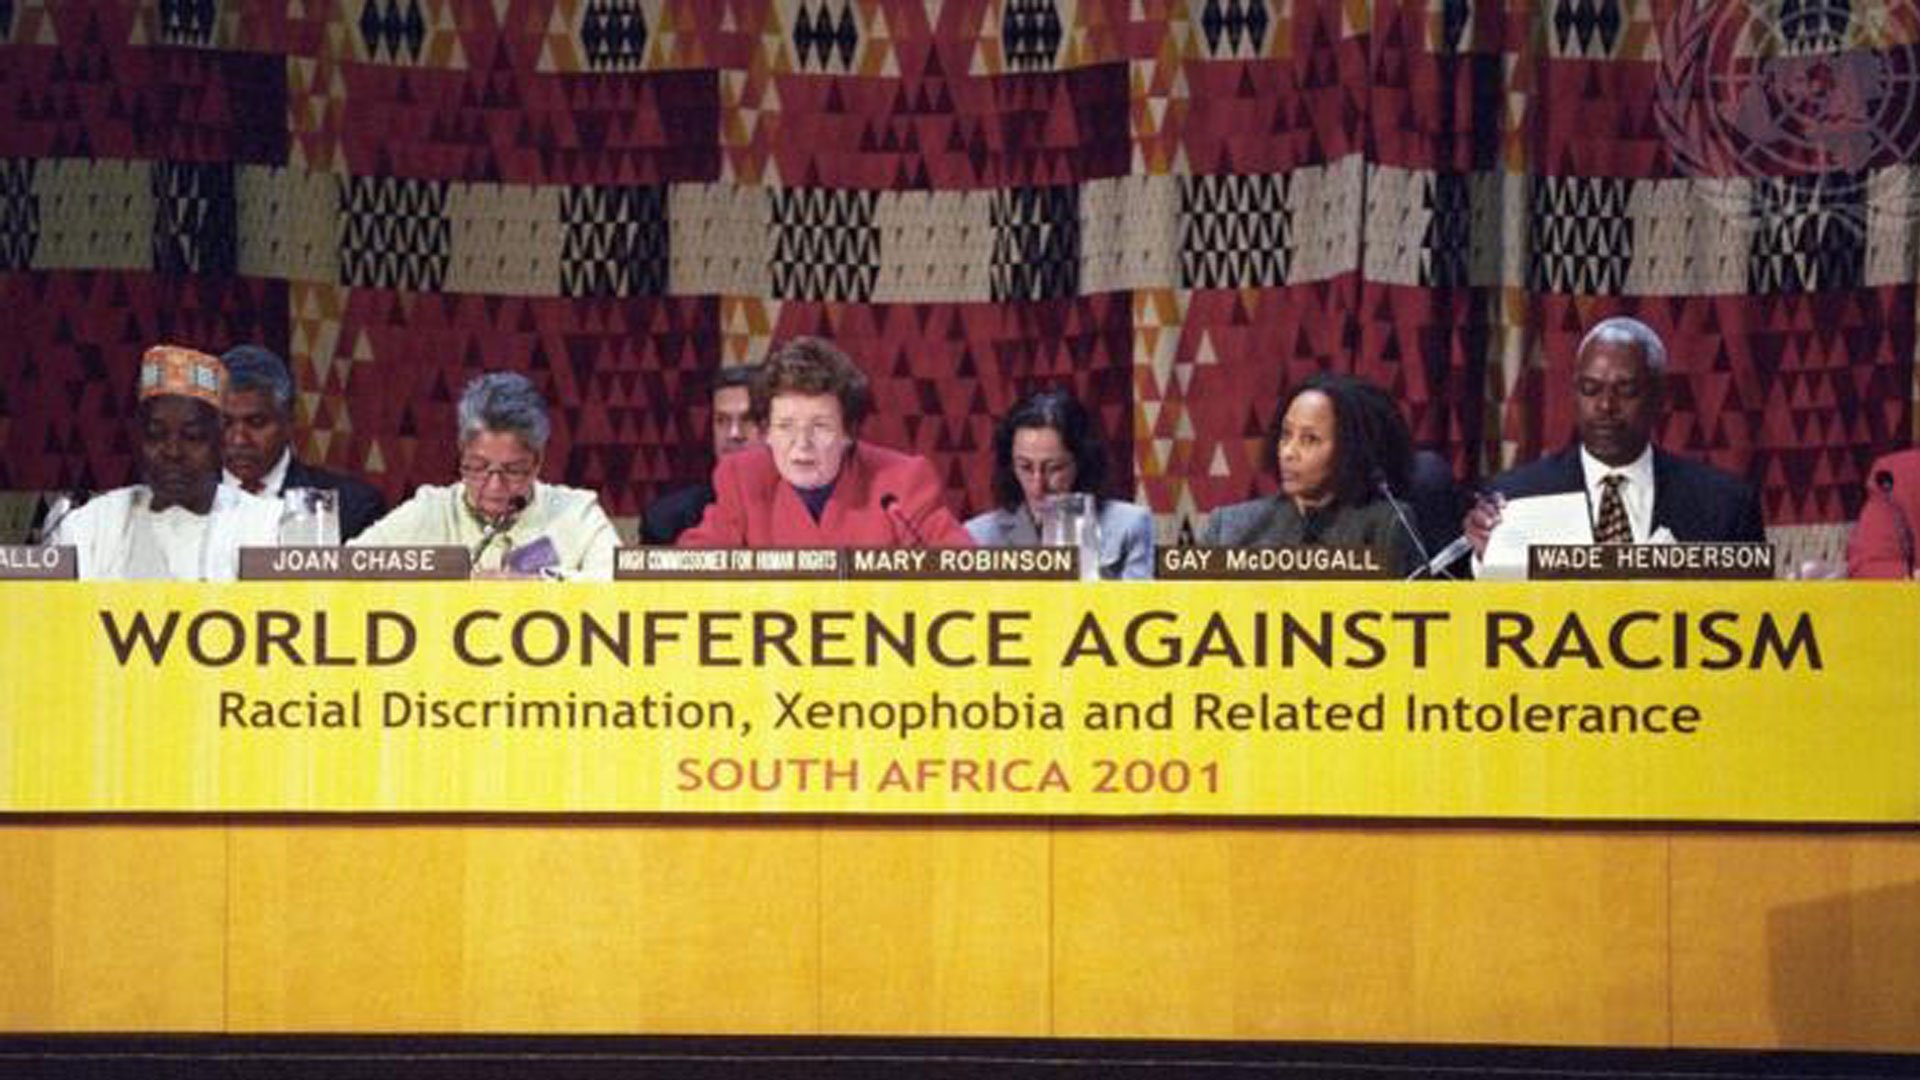 The U.N. World Conference against Racism in Durban, South Africa in 2001. (UN Photo)